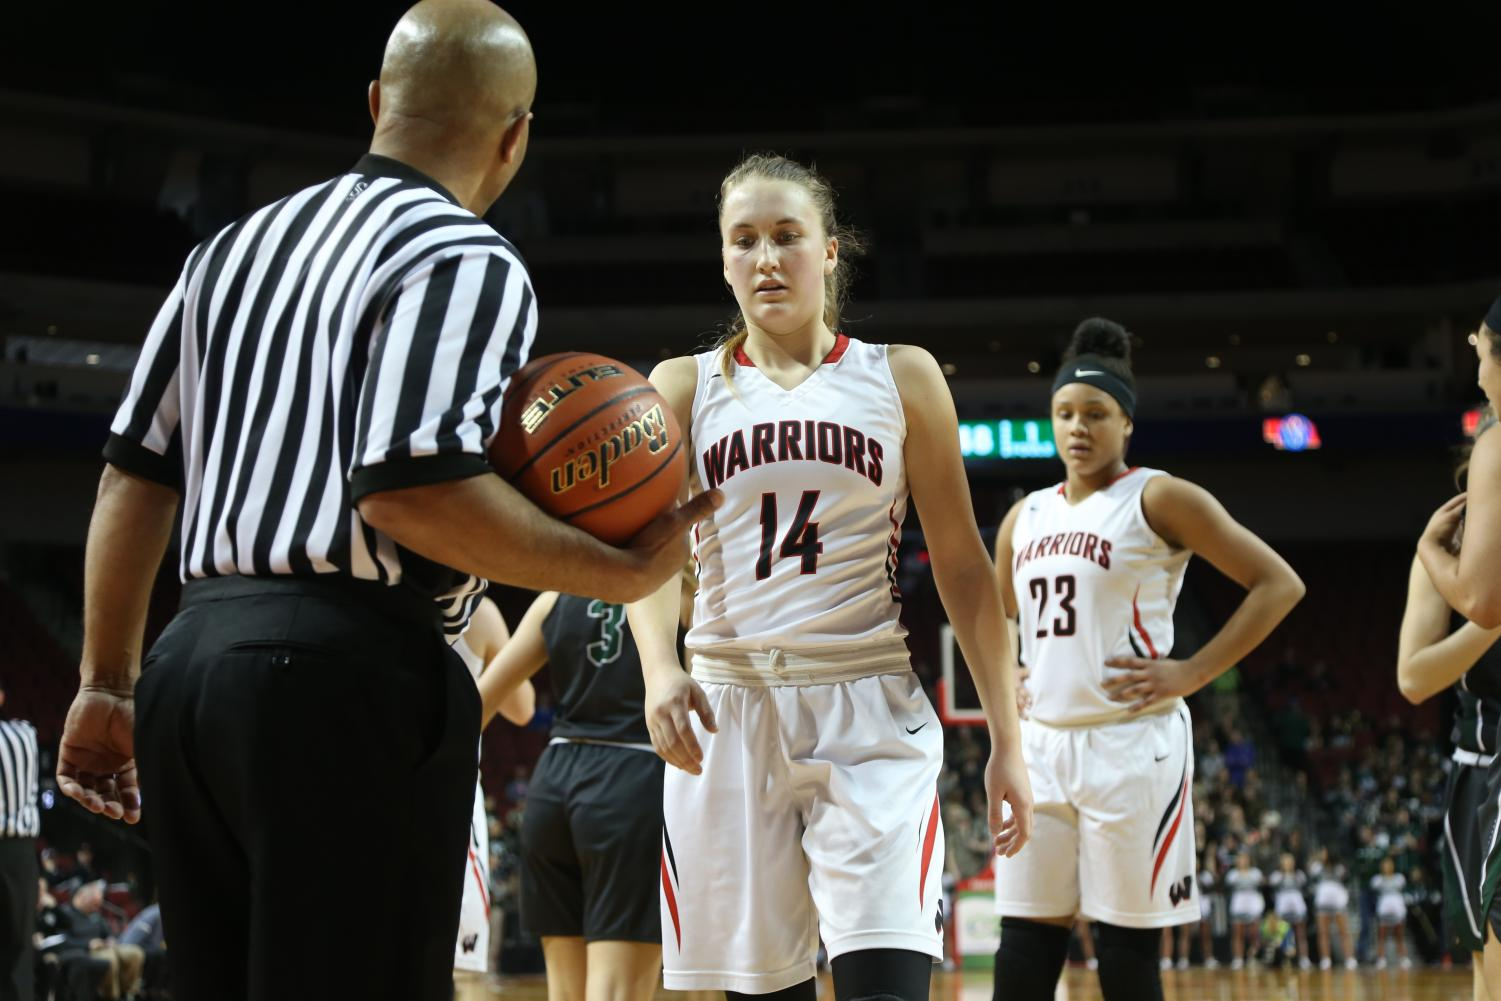 Junior Ella Wedergren scored 18 poins in Thursday's state tournament loss.